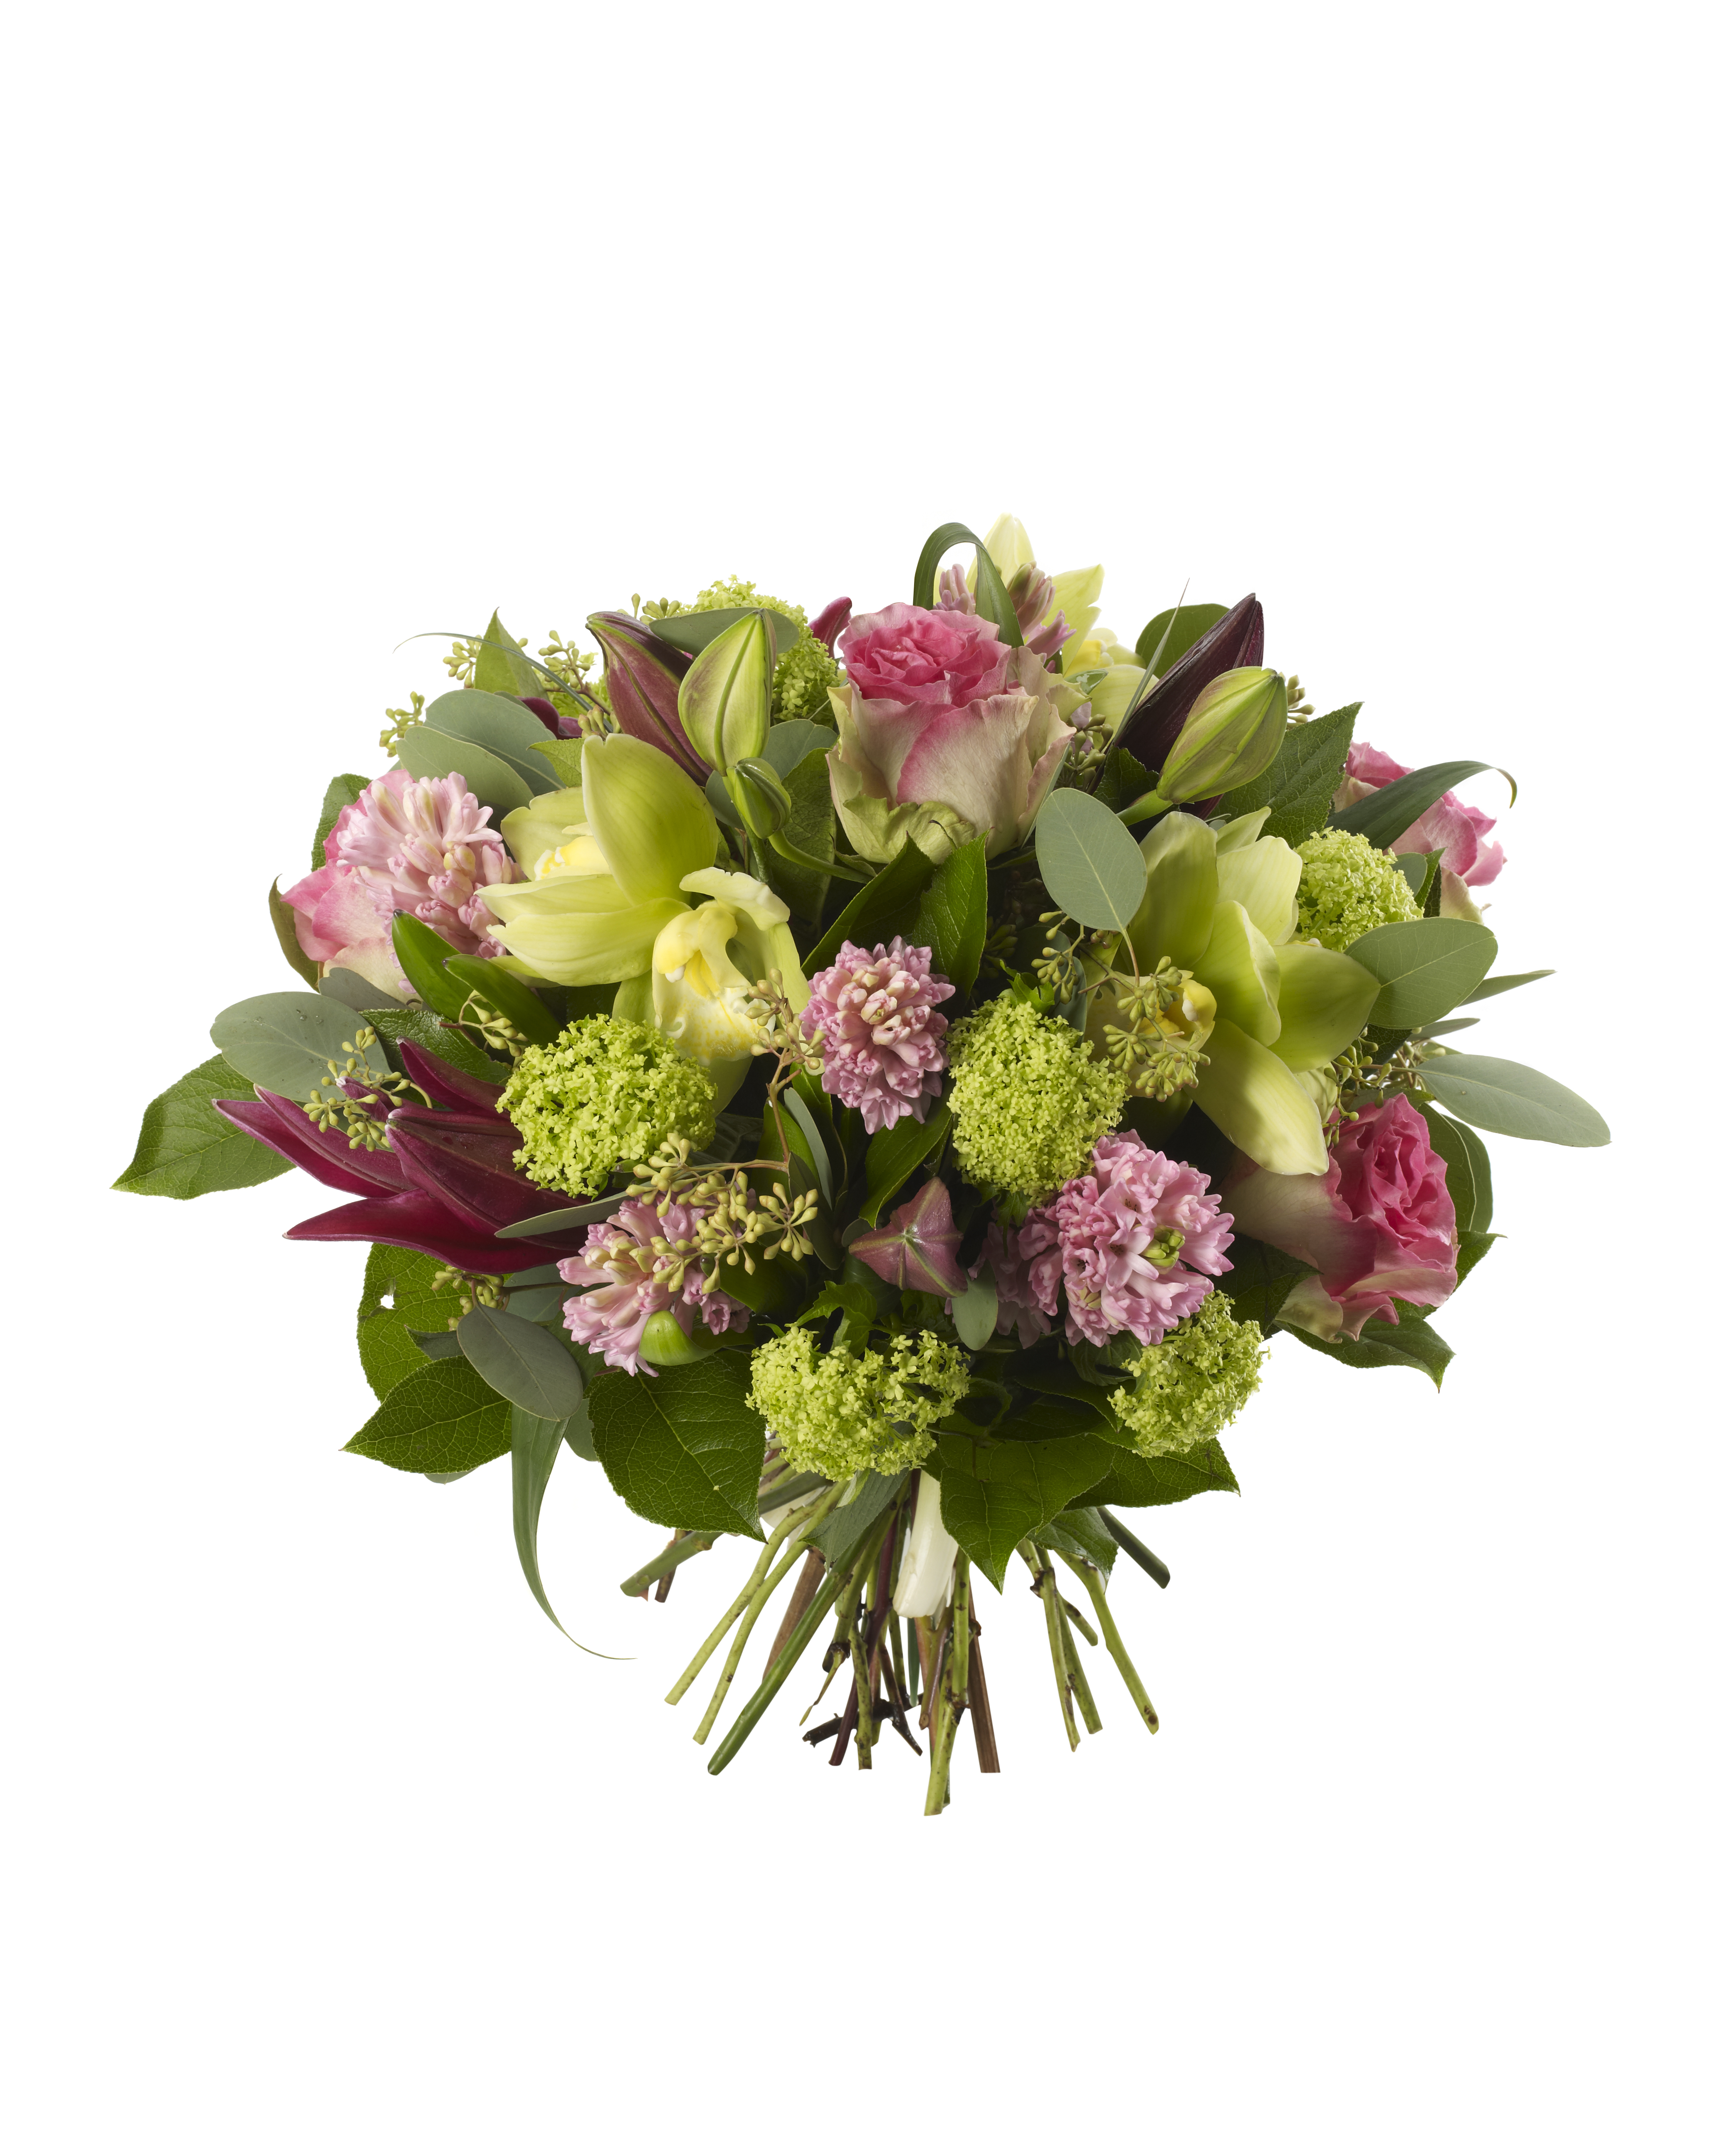 Orchid and hyacinth bouquet ultraviolet london flowers orchid and hyacinth bouquet izmirmasajfo